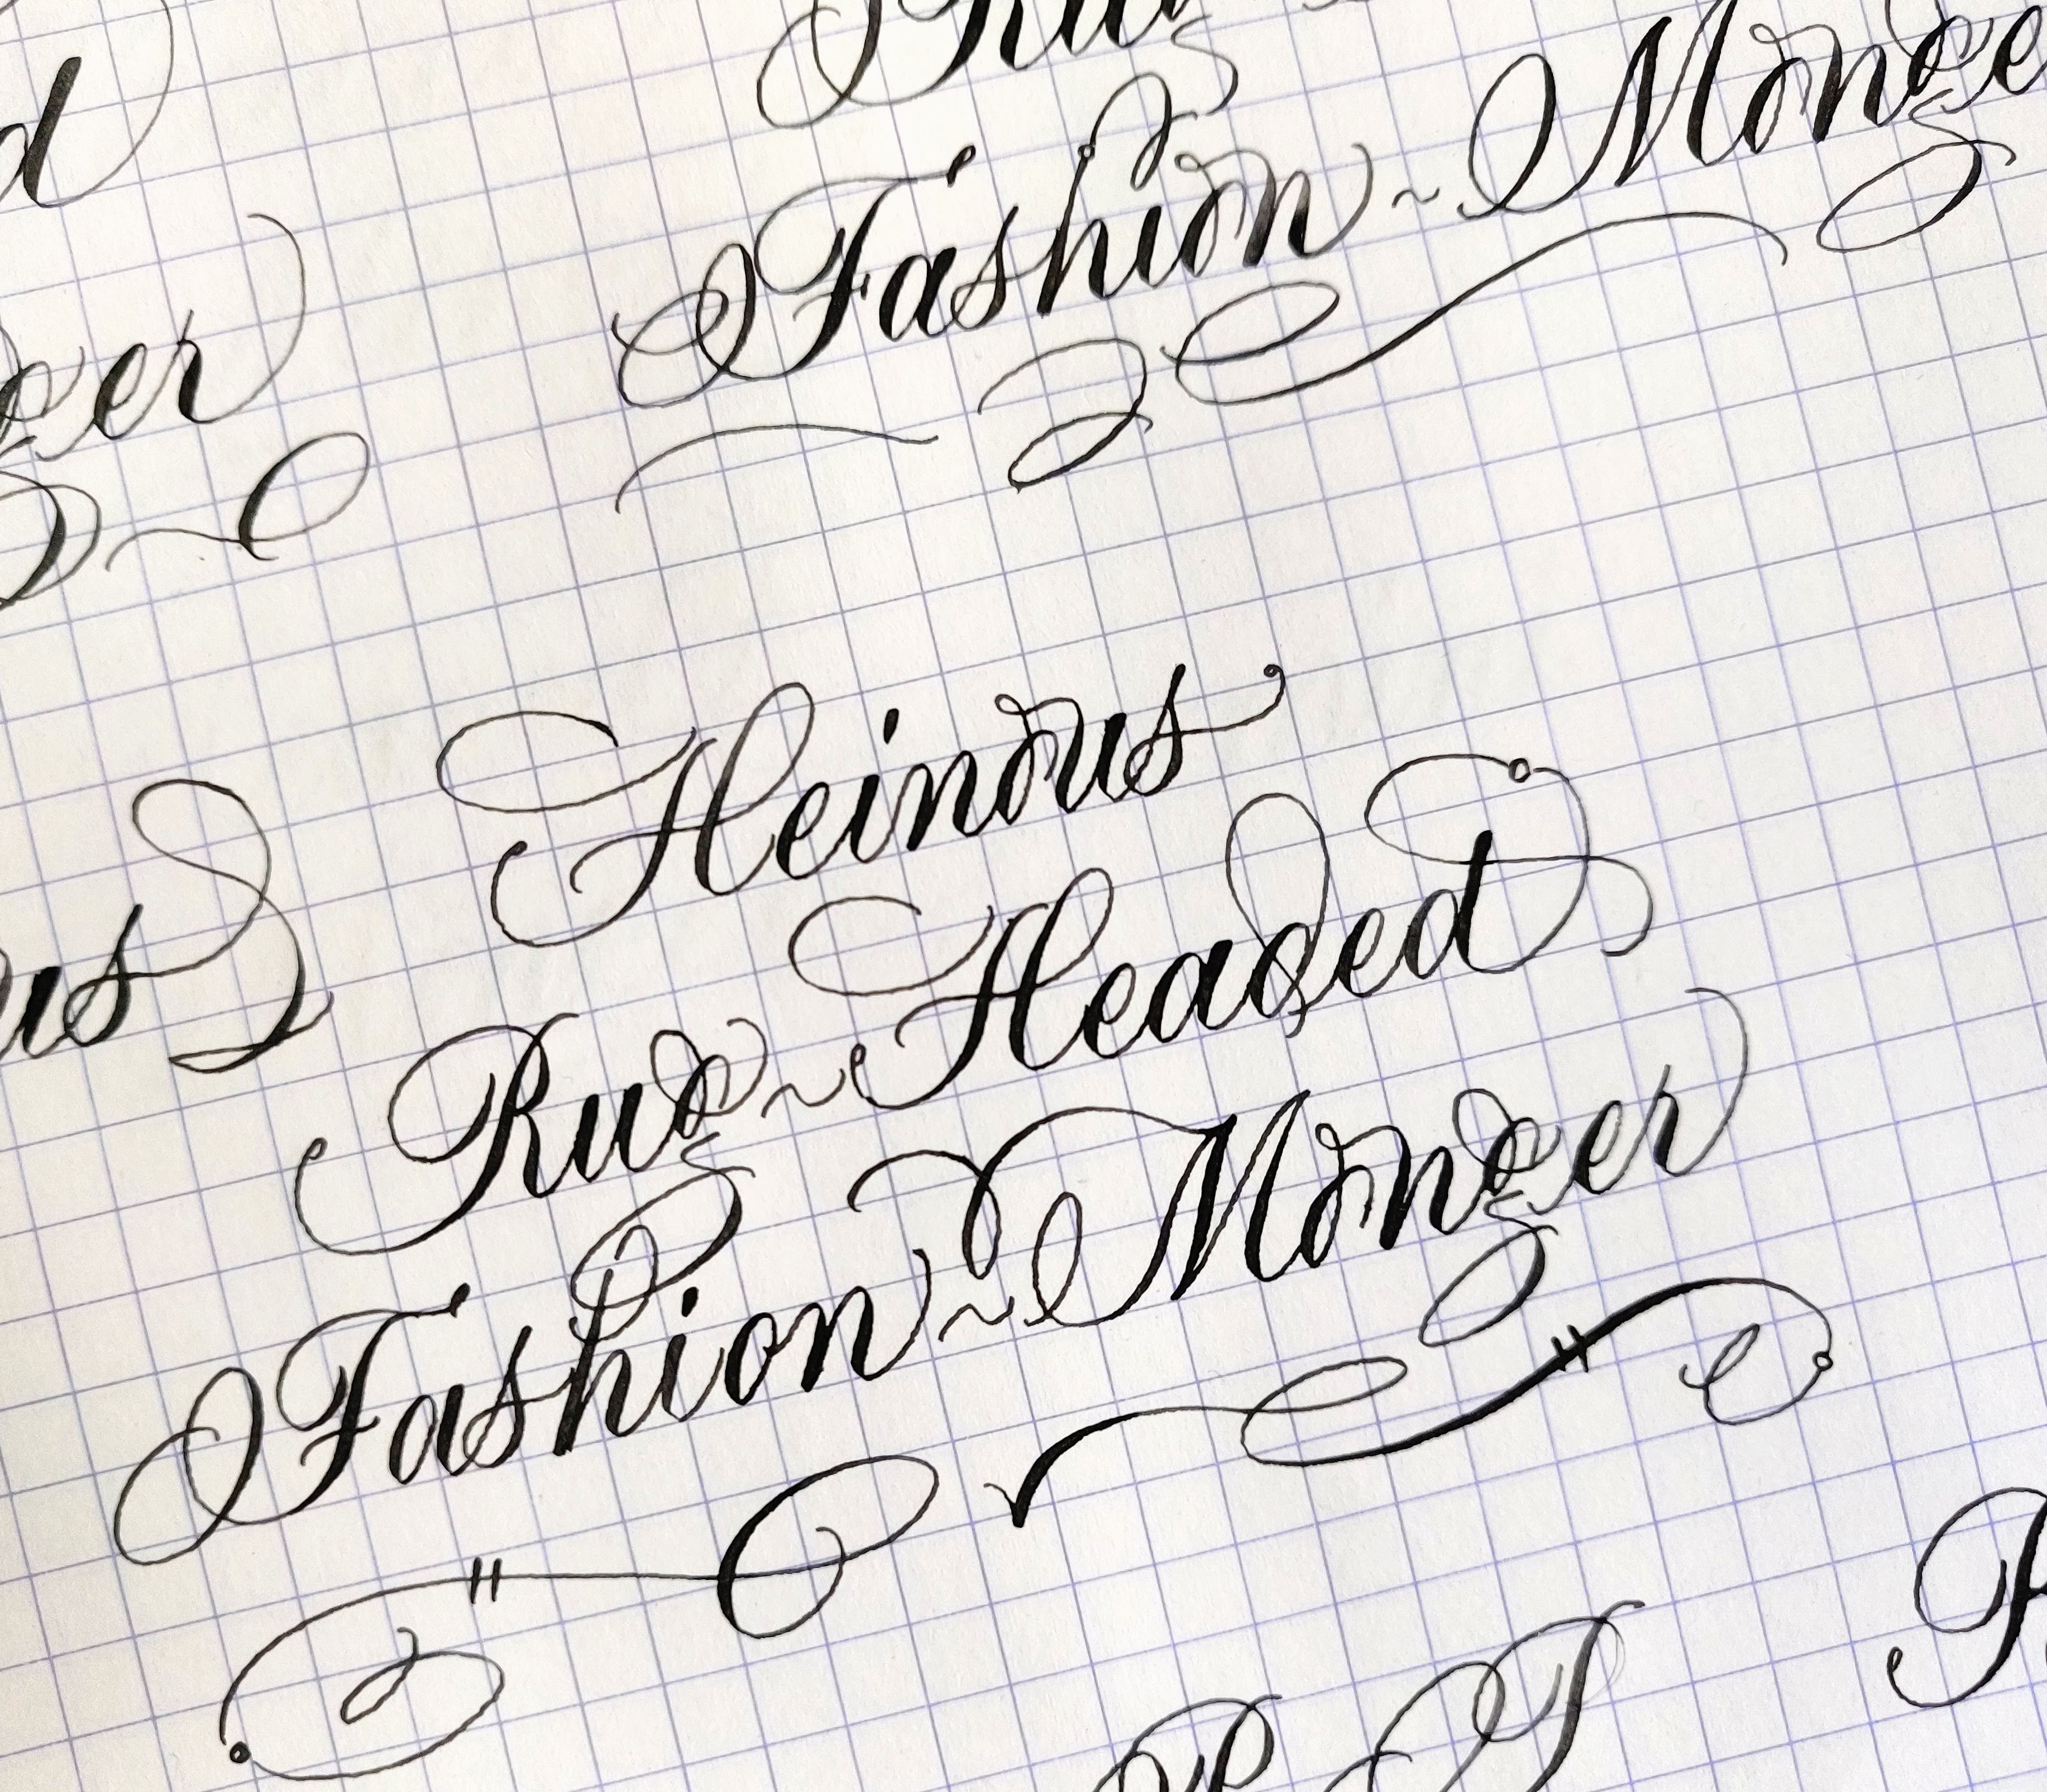 calligraphy-shakespearian-insult